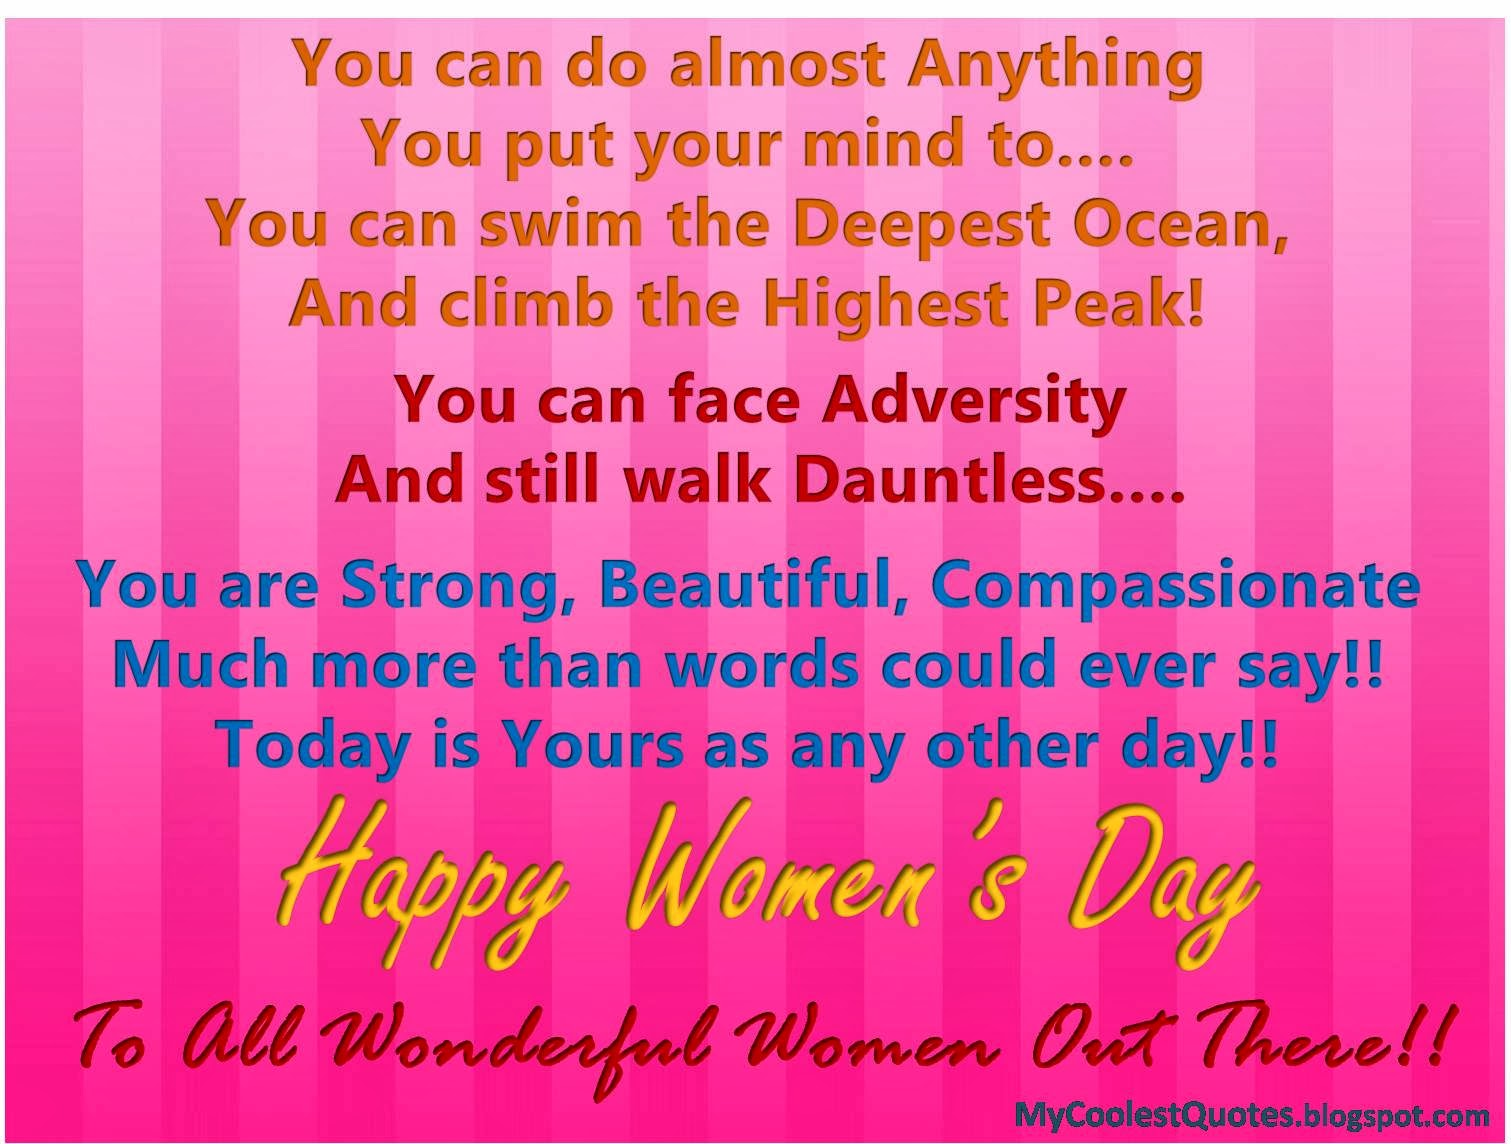 News updates movies messages happy womens day warm messages she is always ahead she is always ahead of what she may all the best wishes for you on this special day happy womens day kristyandbryce Images